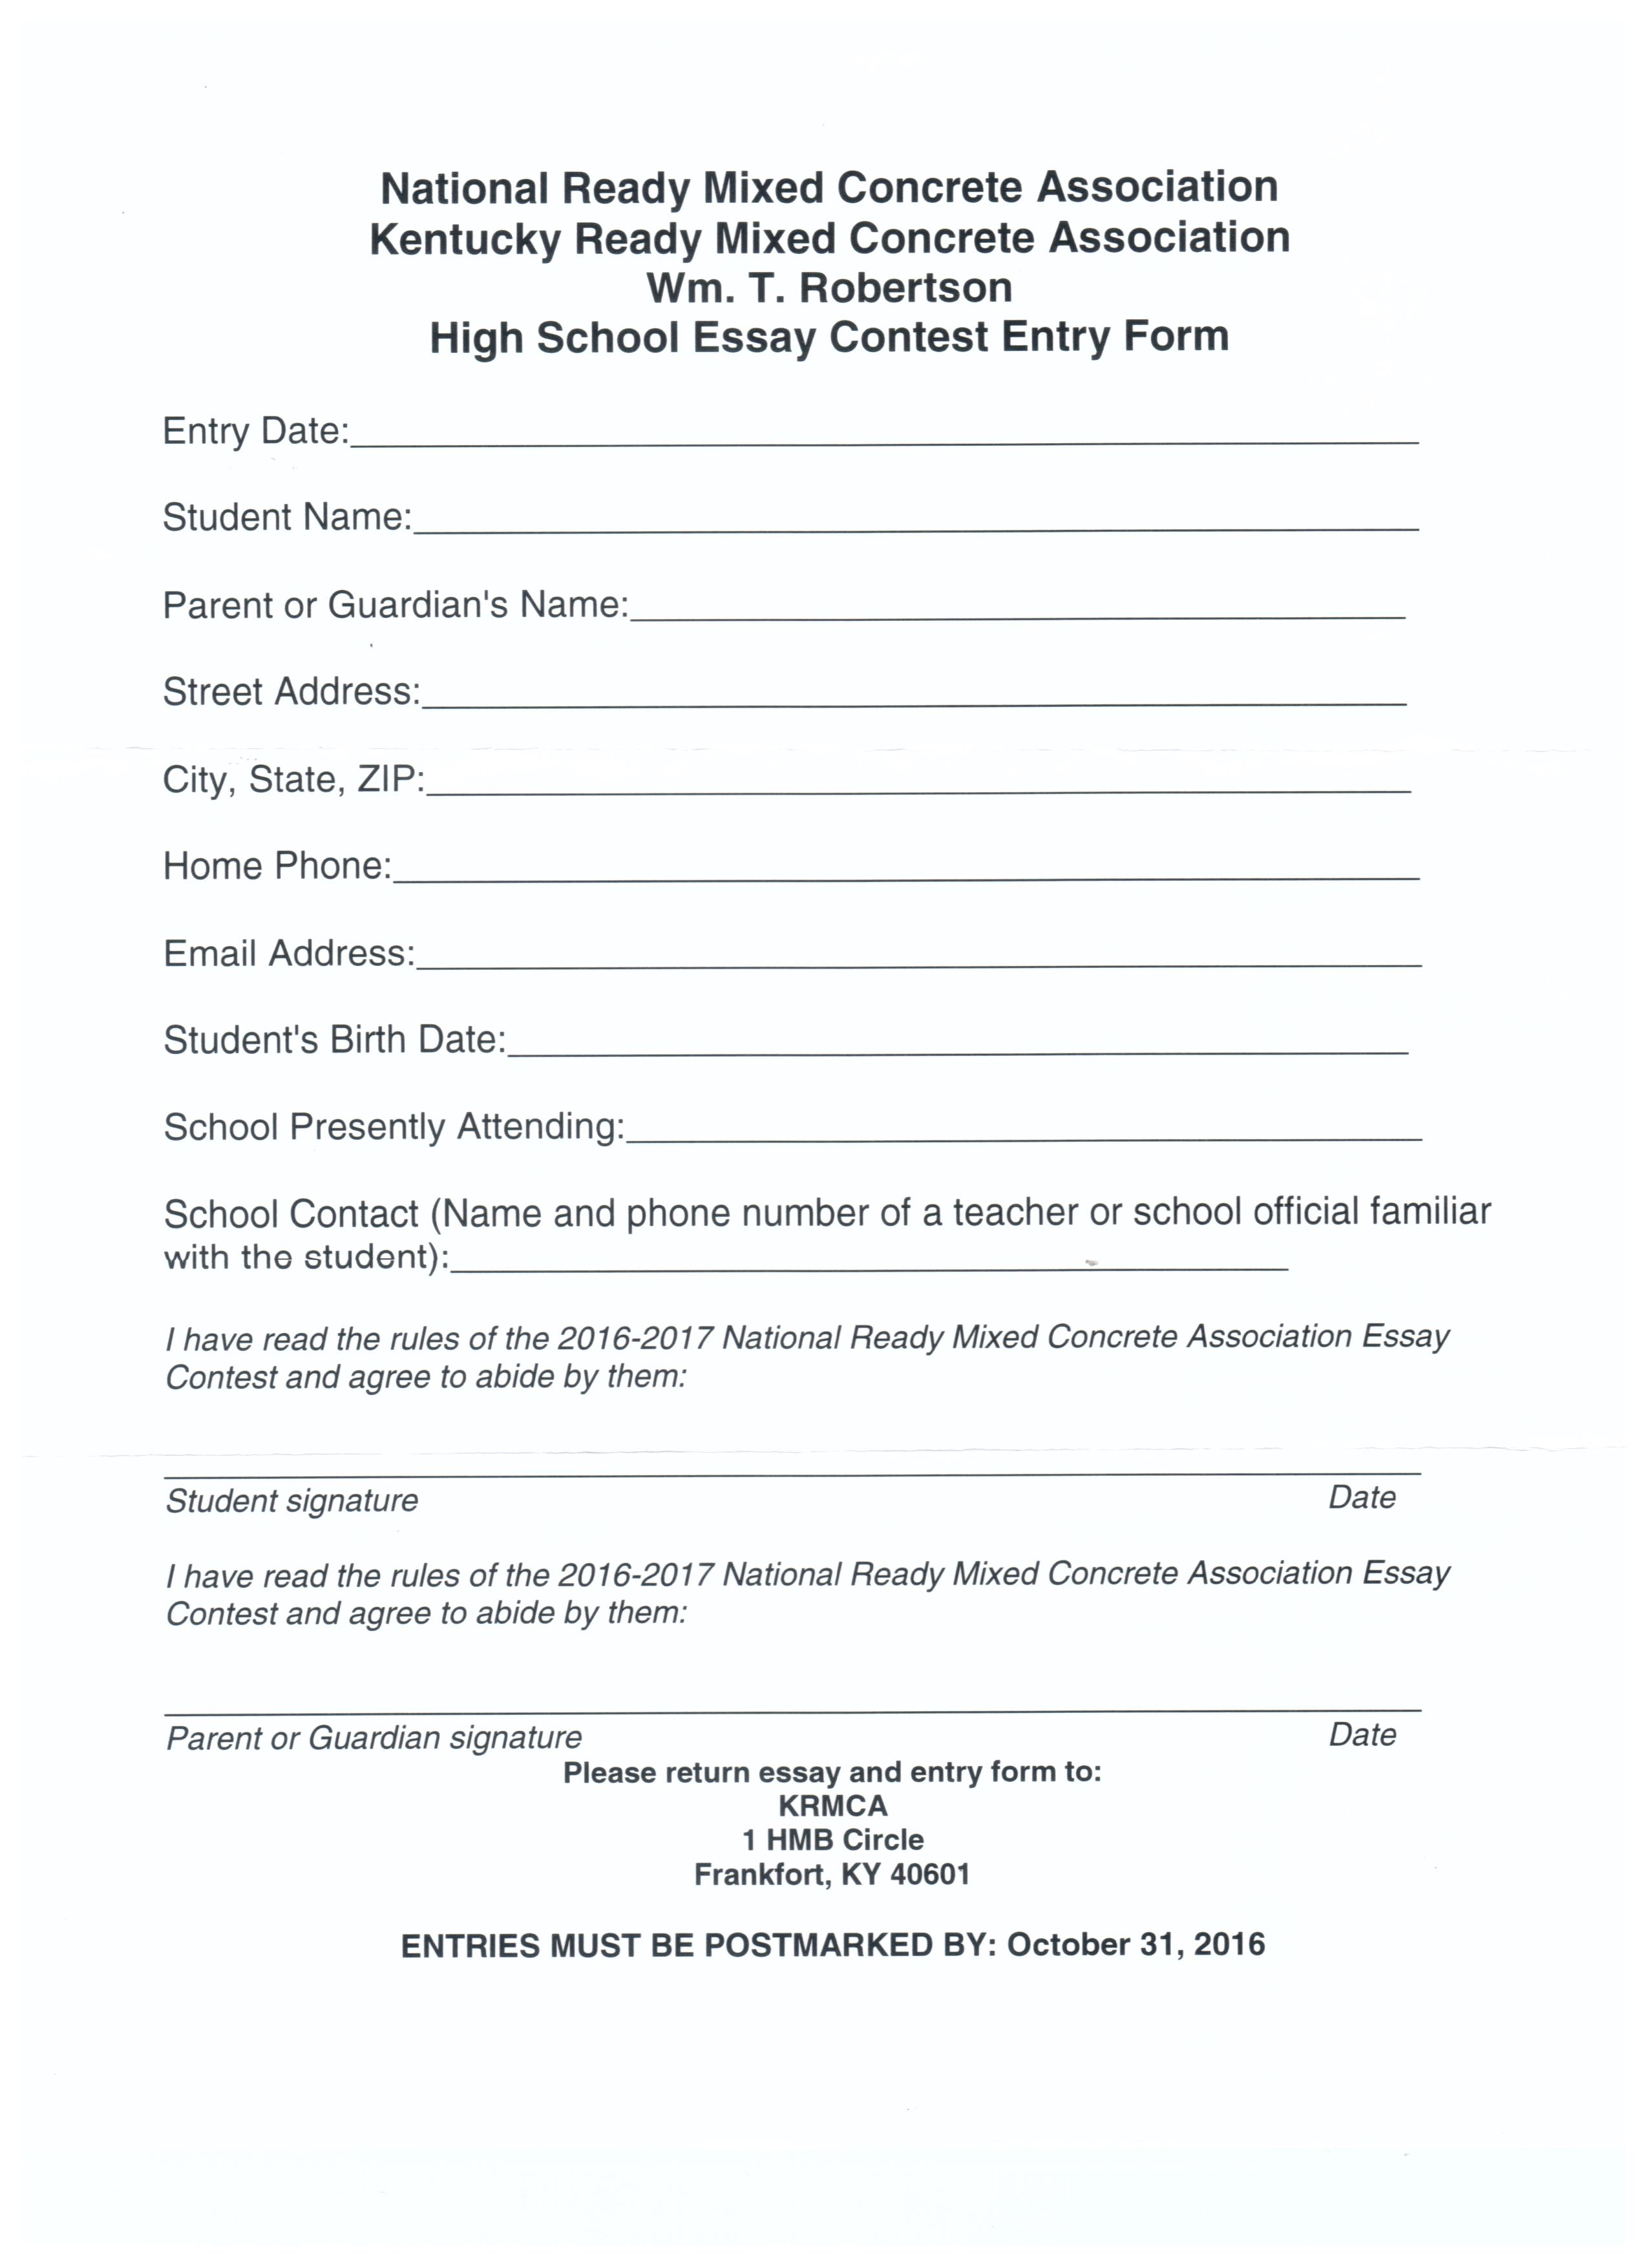 005 Scholarship Essay Contests On Why I Need Financial Community Service For Highschool Students Concrete Contest Stupendous Middle School High Seniors Full